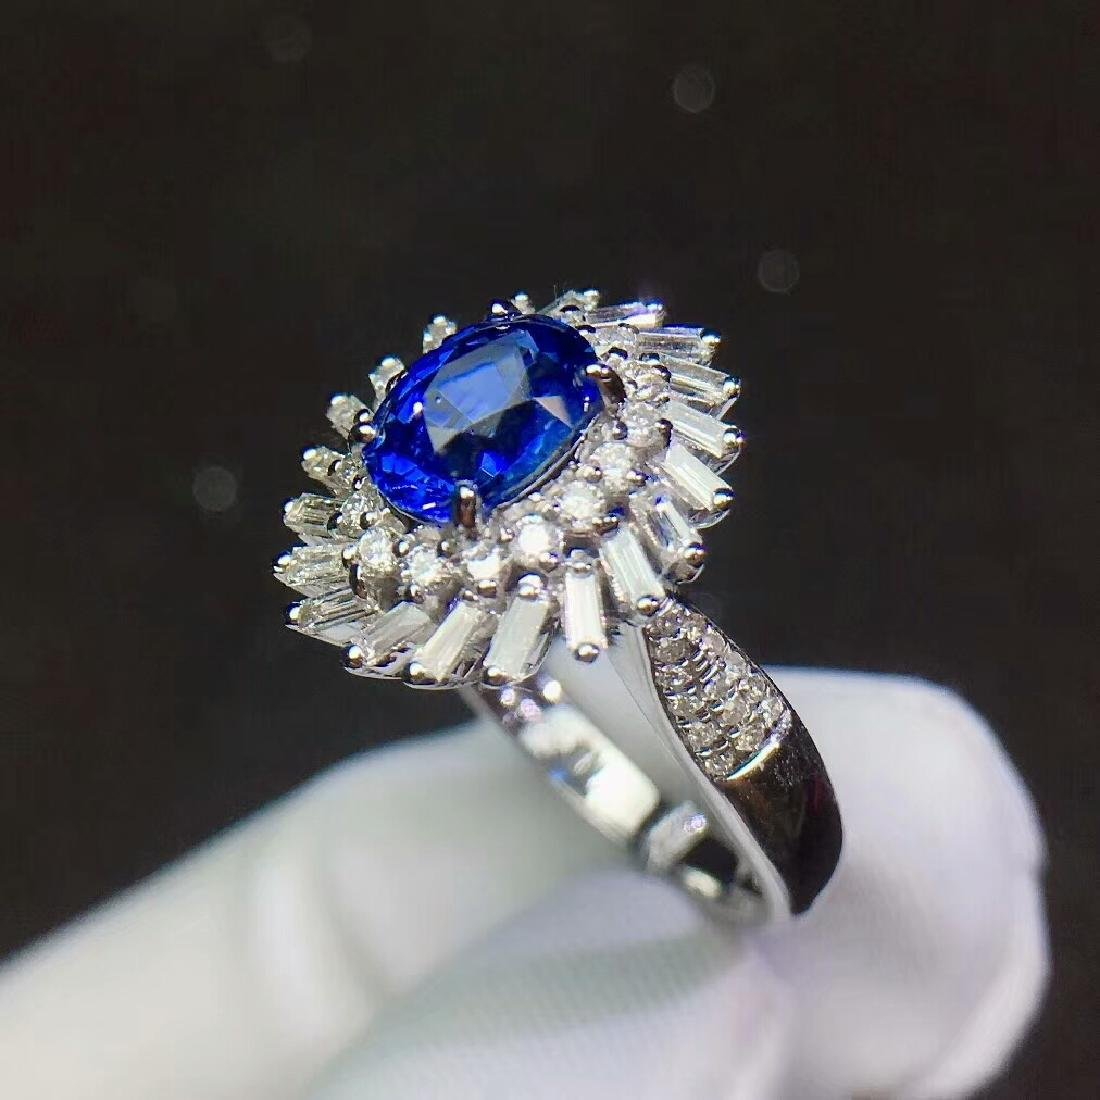 1.3ct Sapphire Ring in 18kt White Gold - 6